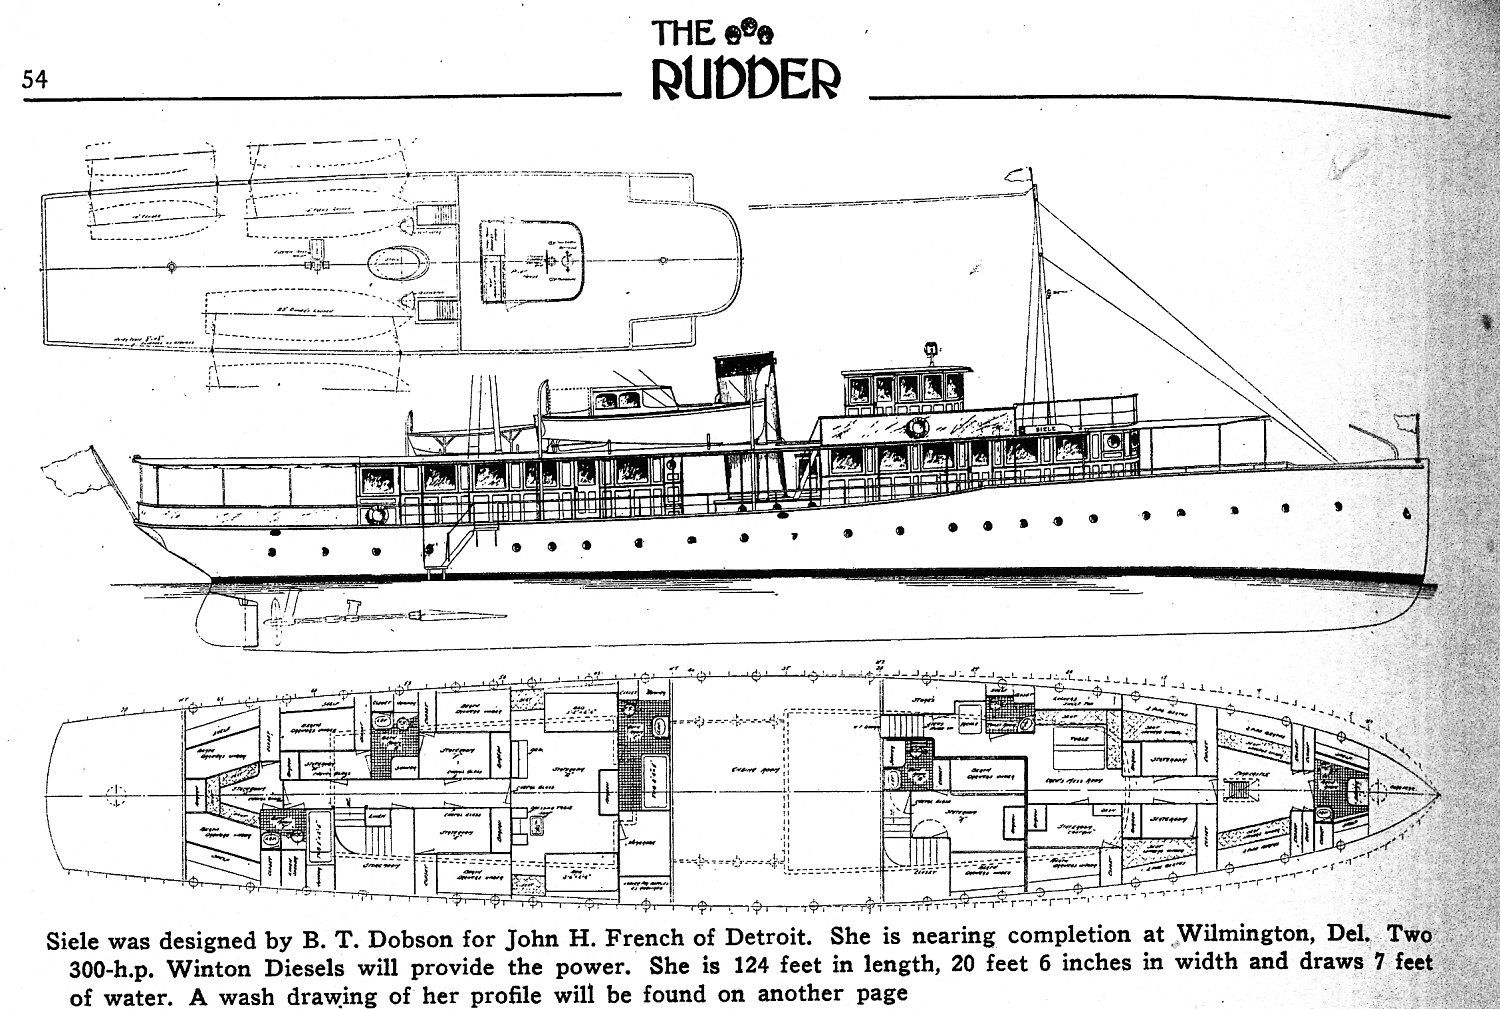 Technical Drawing of the Siele from the May 1926 Rudder magazine, courtesy of Maunsel White